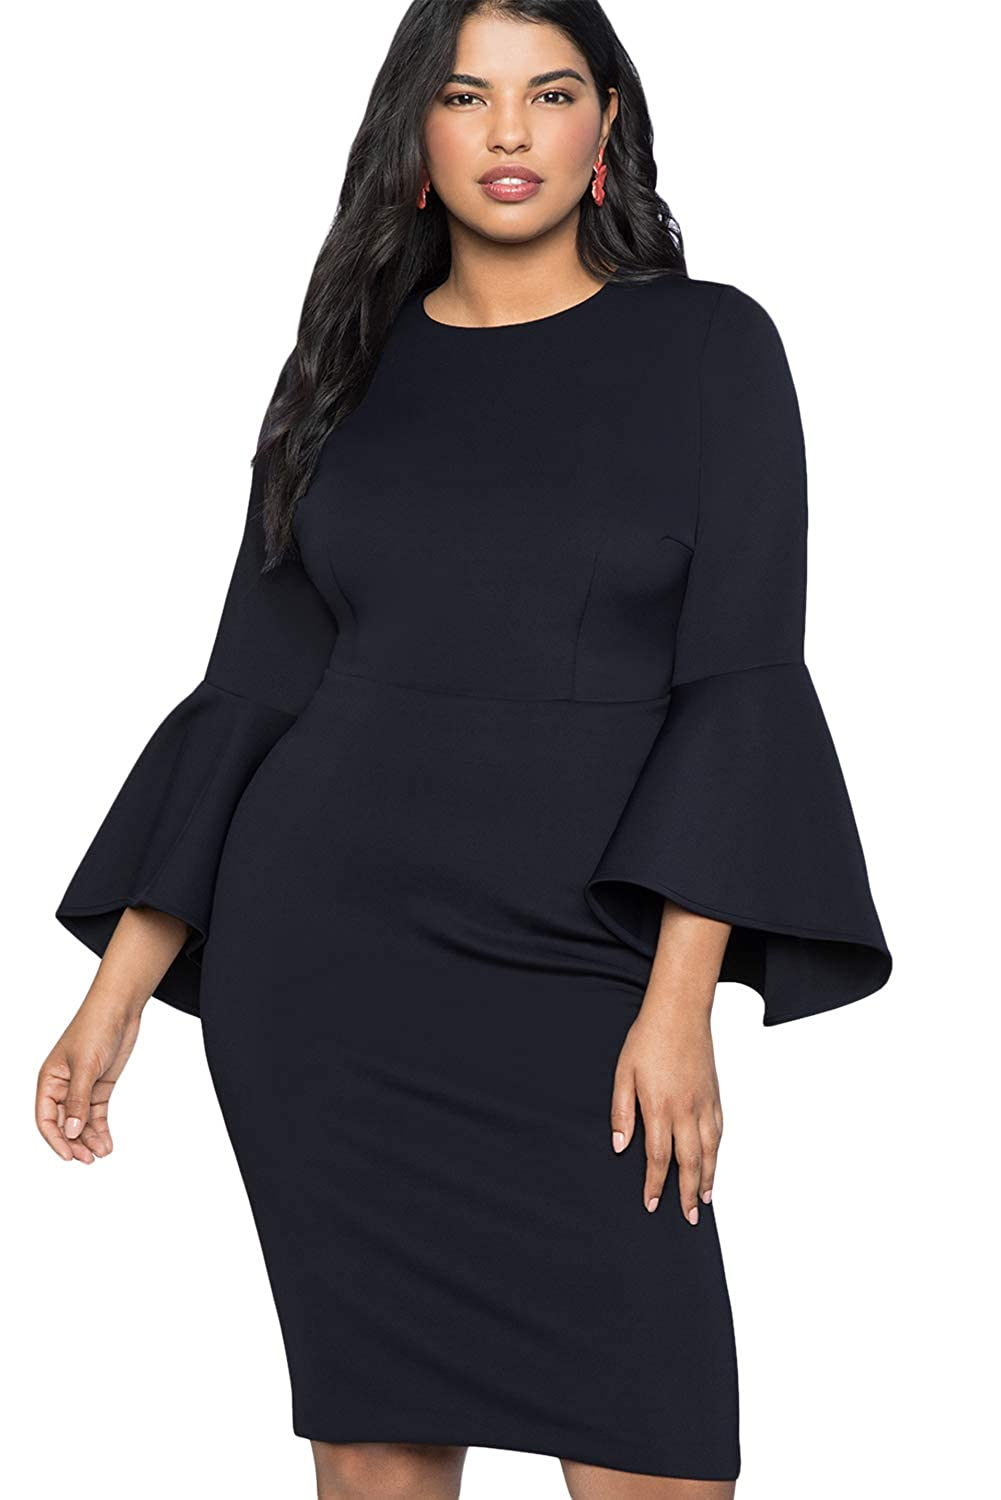 Rela Bota Women's Plus Size Flare Bell Sleeve Midi Cocktail Party Scuba Dress